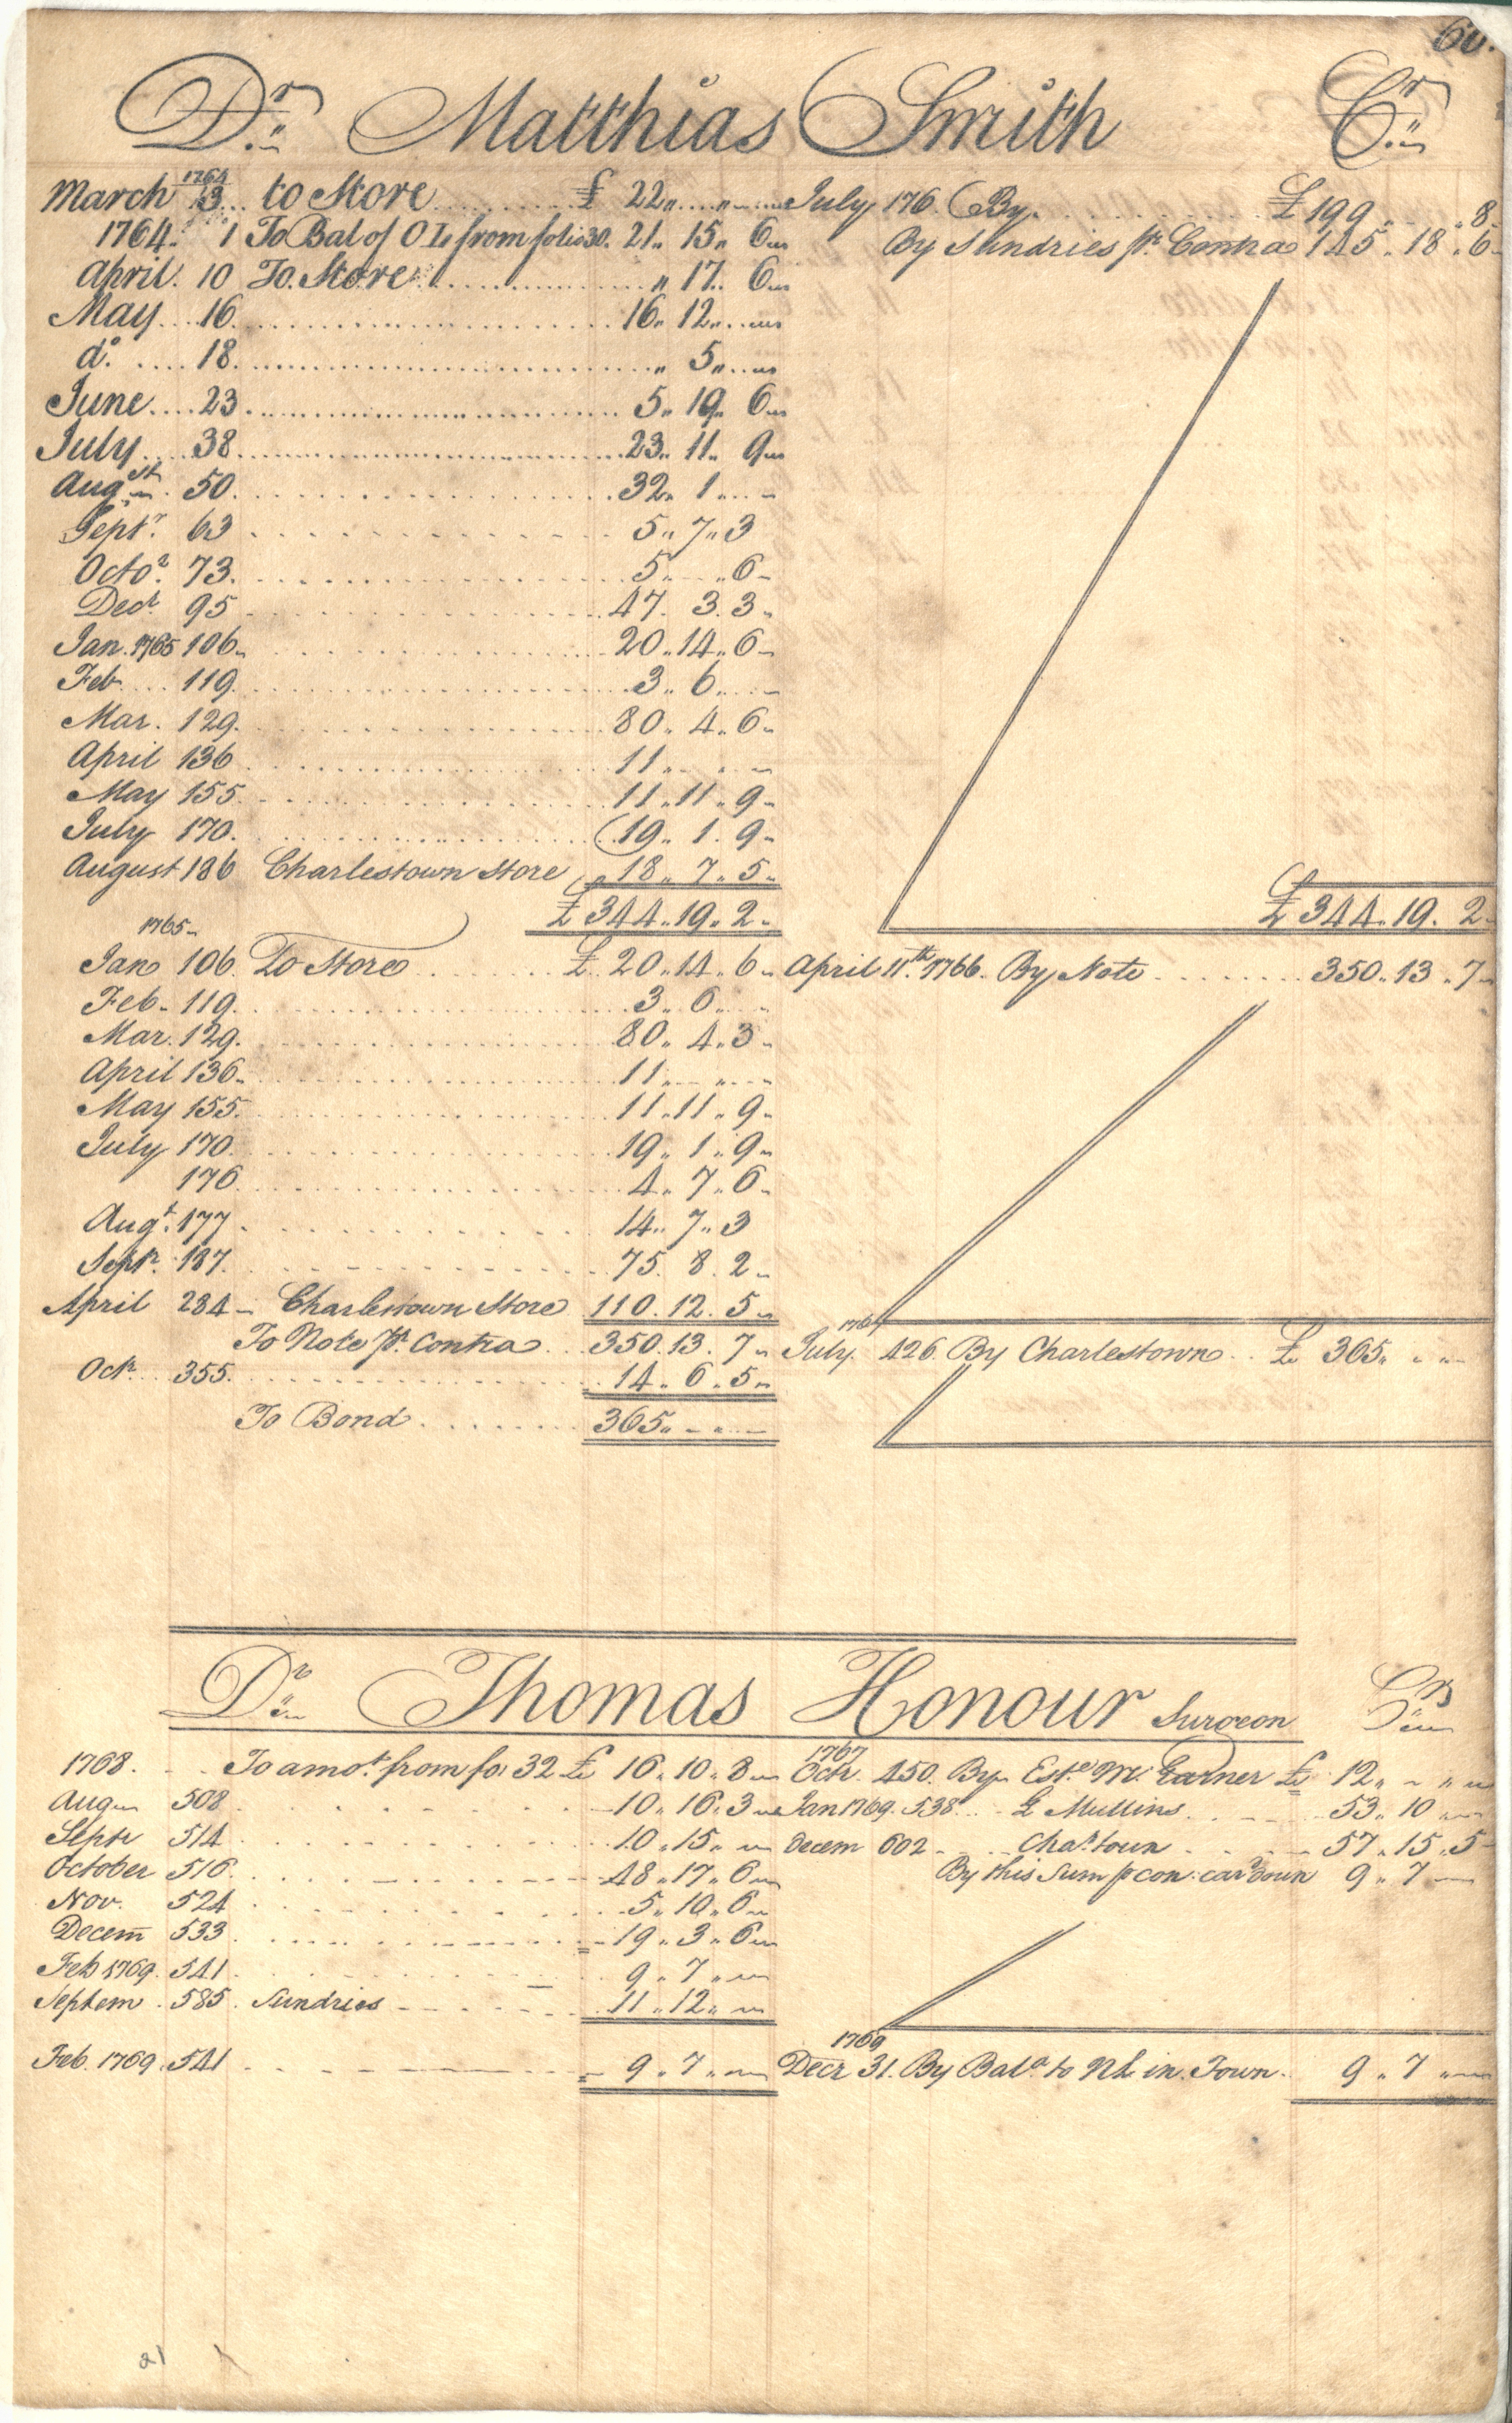 Plowden Weston's Business Ledger, page 66